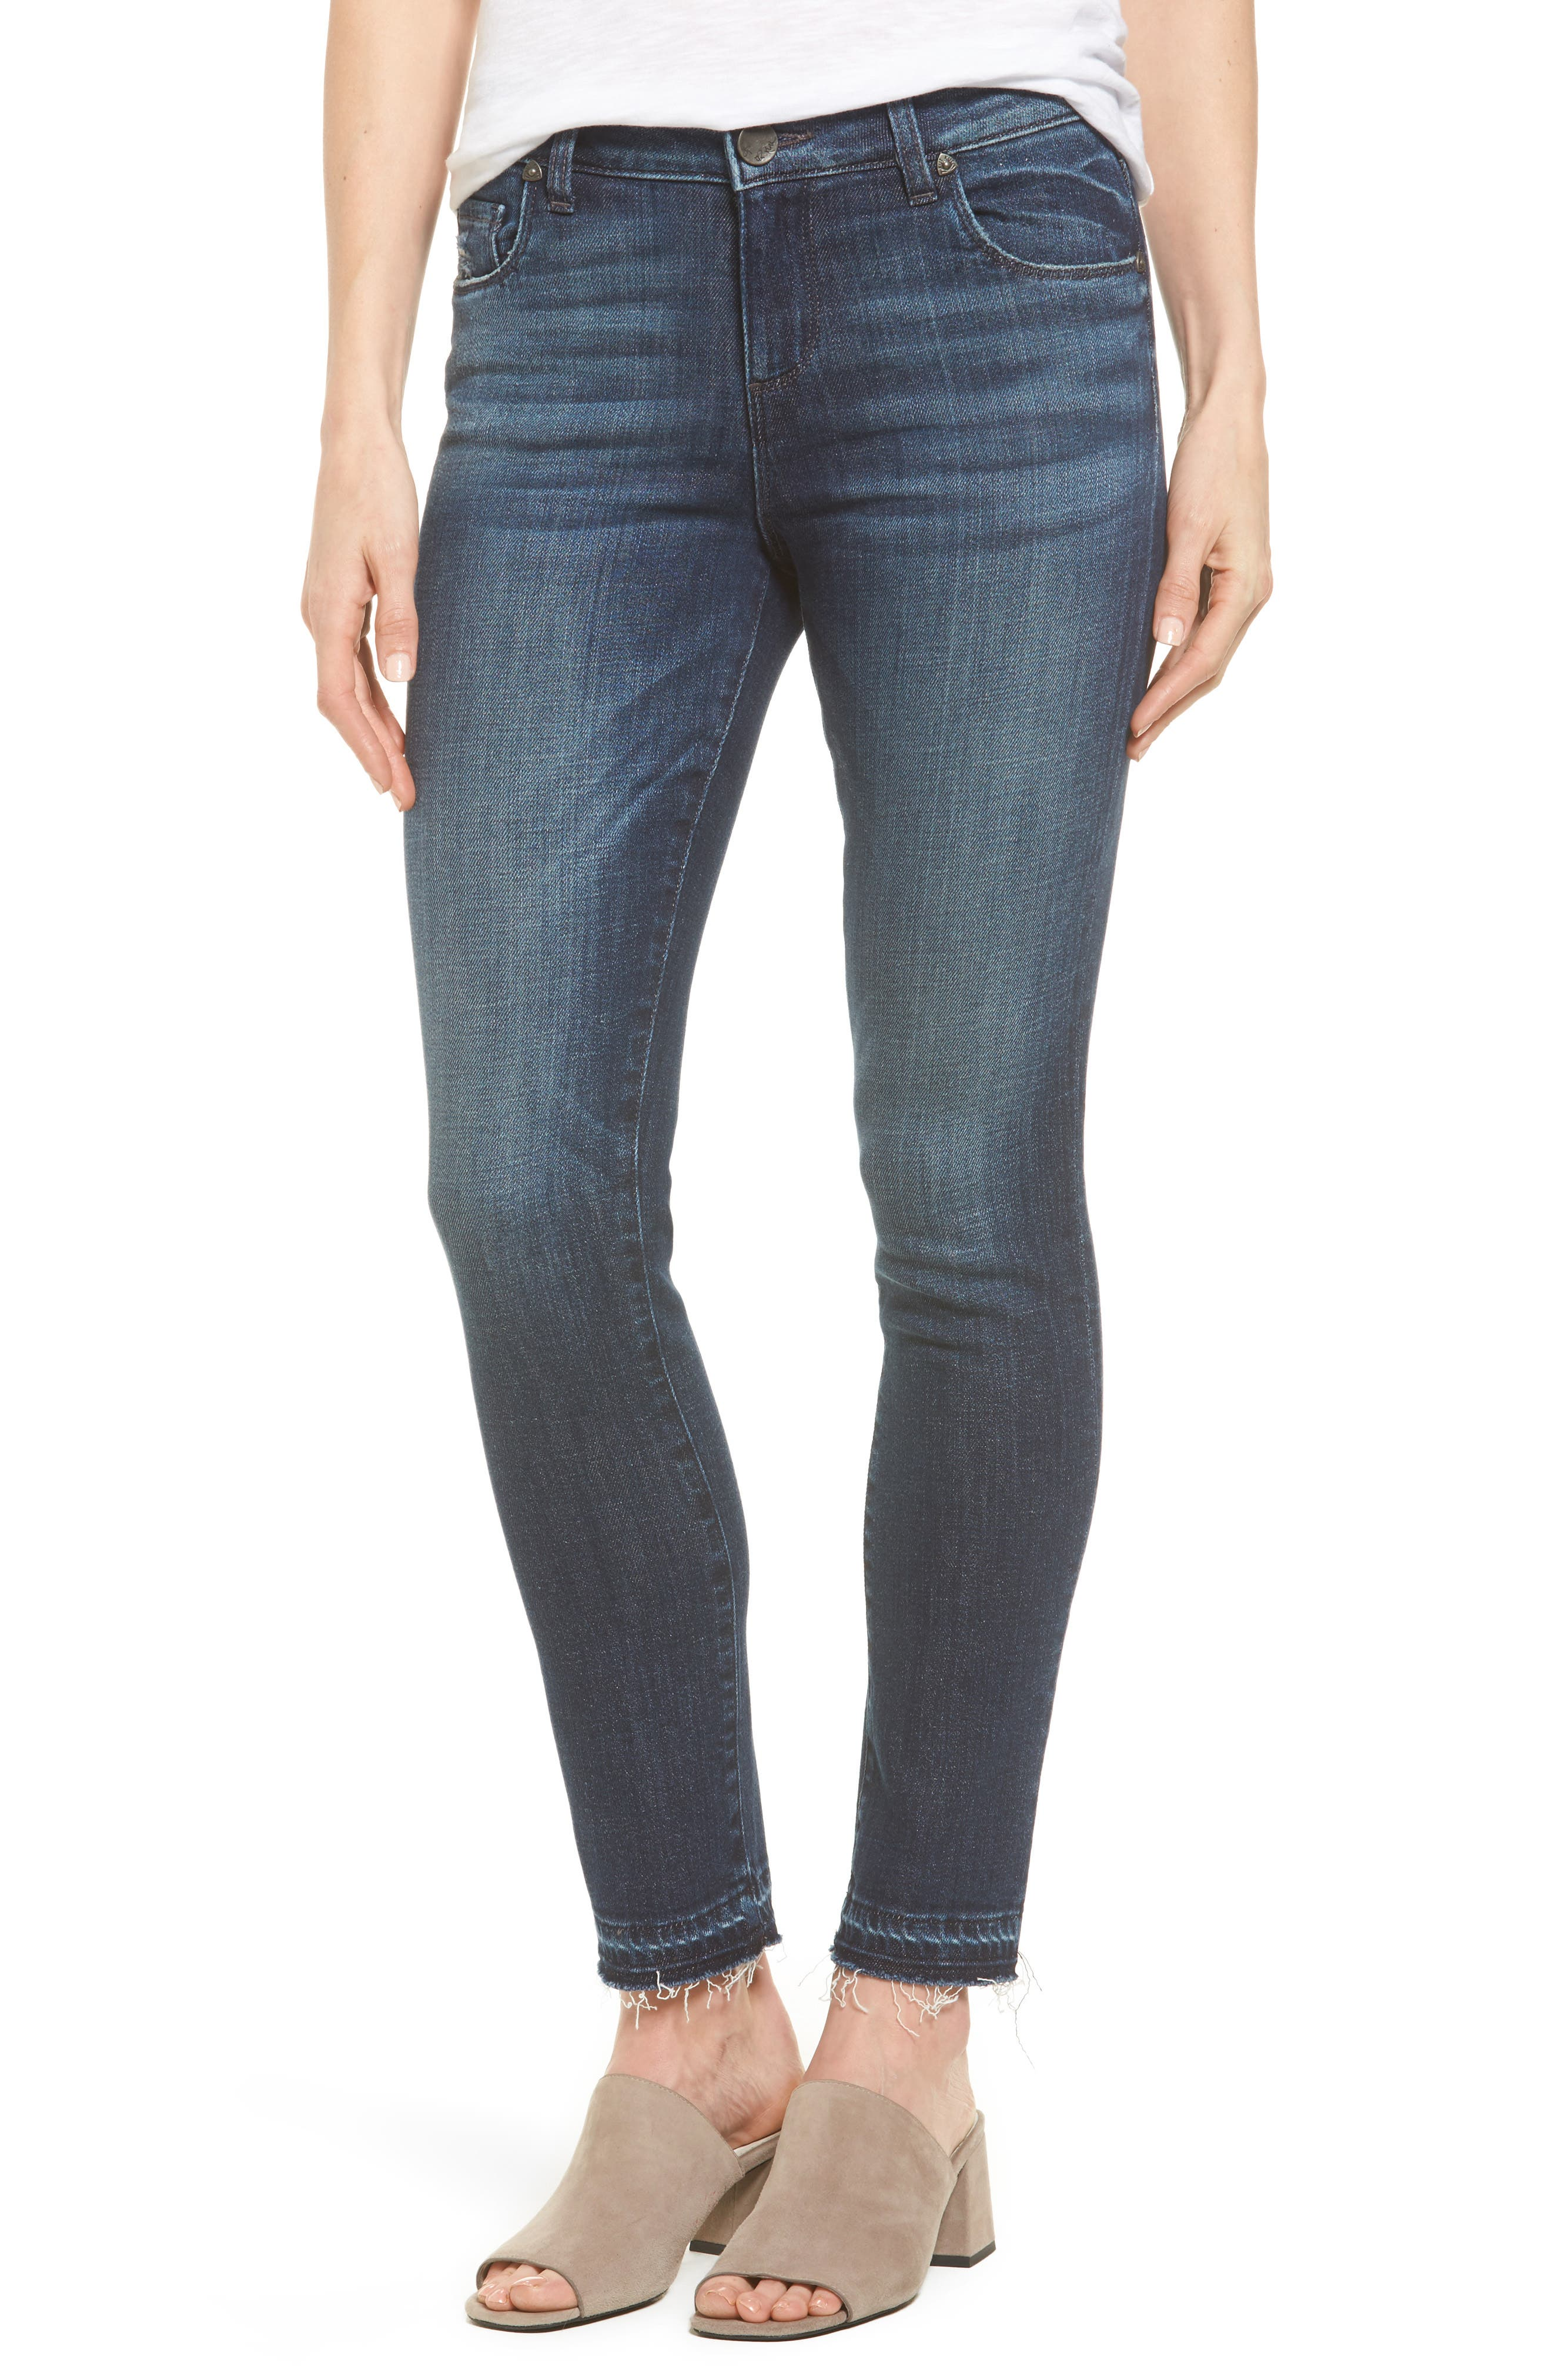 Alternate Image 1 Selected - KUT from the Kloth Reese Release Hem Ankle Jeans (Prevailing)